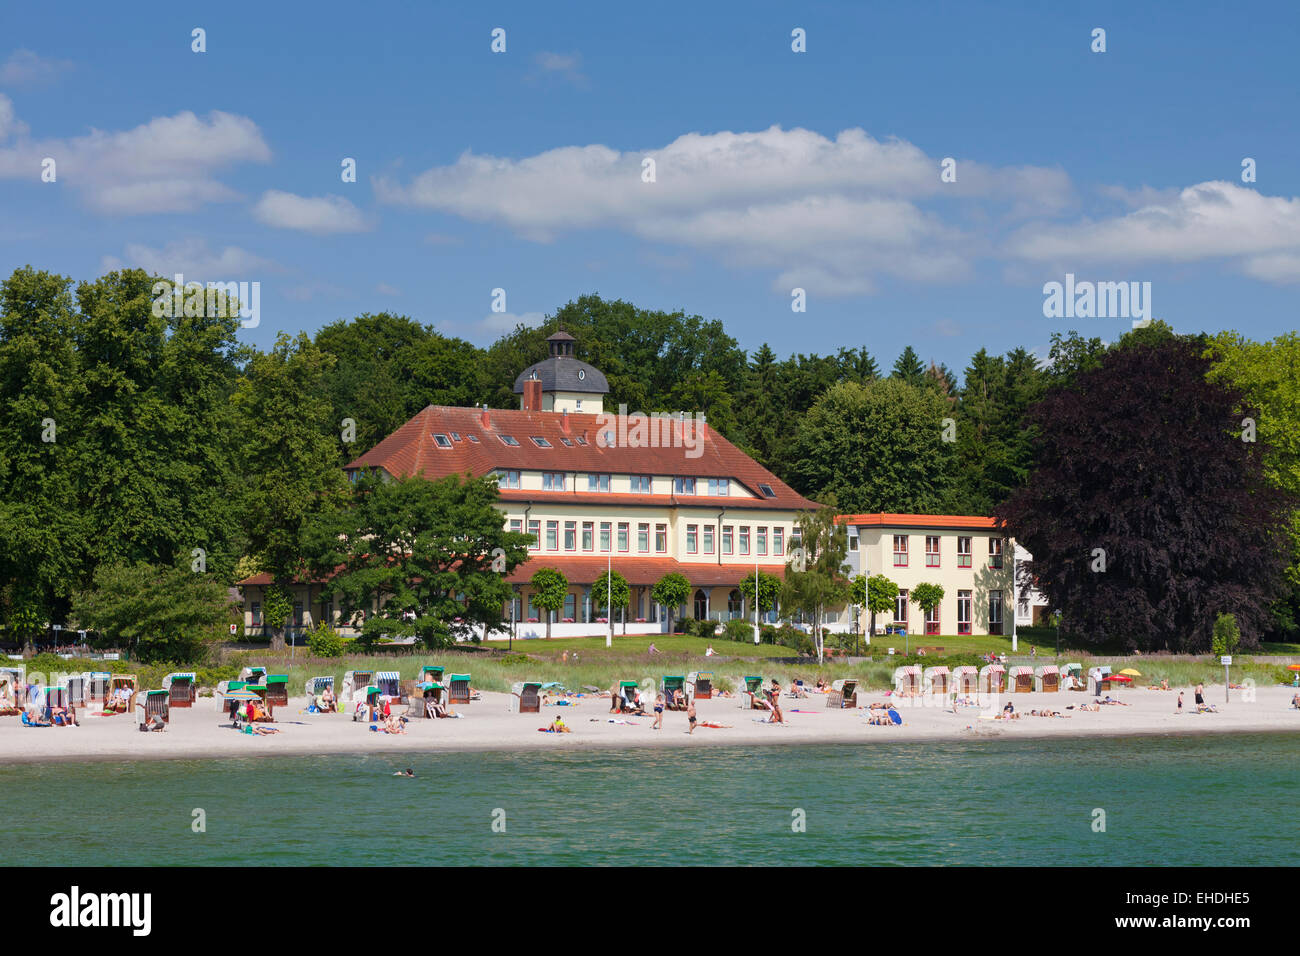 The Henry Everling Haus and sunbathers in beach chairs at the seaside resort Haffkrug, Schleswig-Holstein, Germany - Stock Image